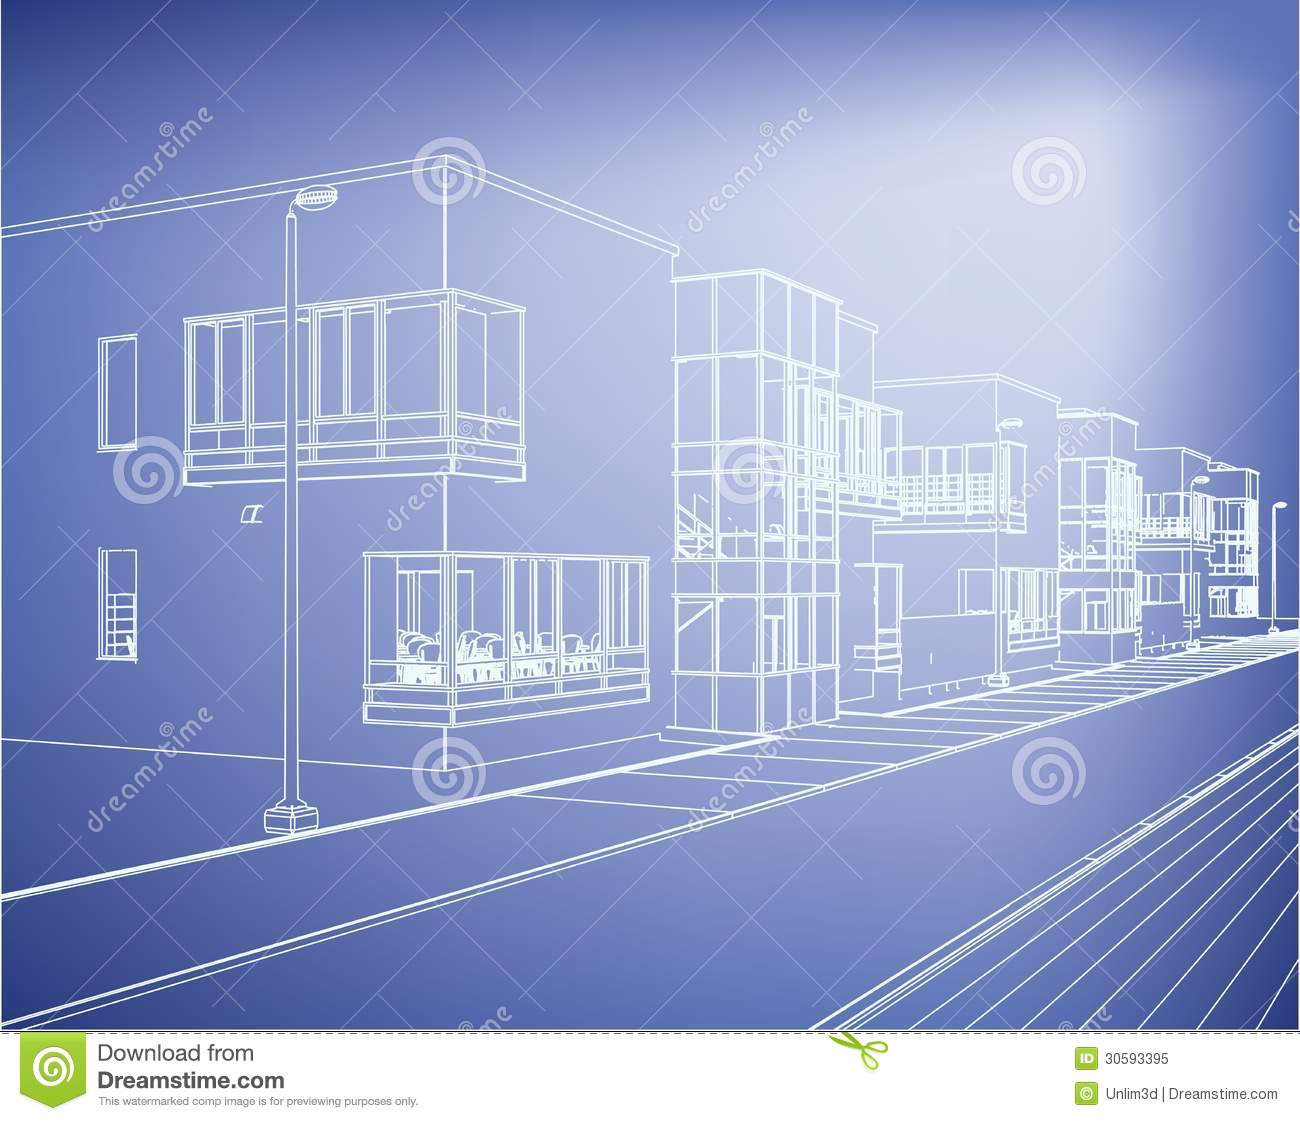 Wireframe building over blueprint stock vector illustration of wireframe building over blueprint stock vector illustration of lines house 30593395 malvernweather Choice Image